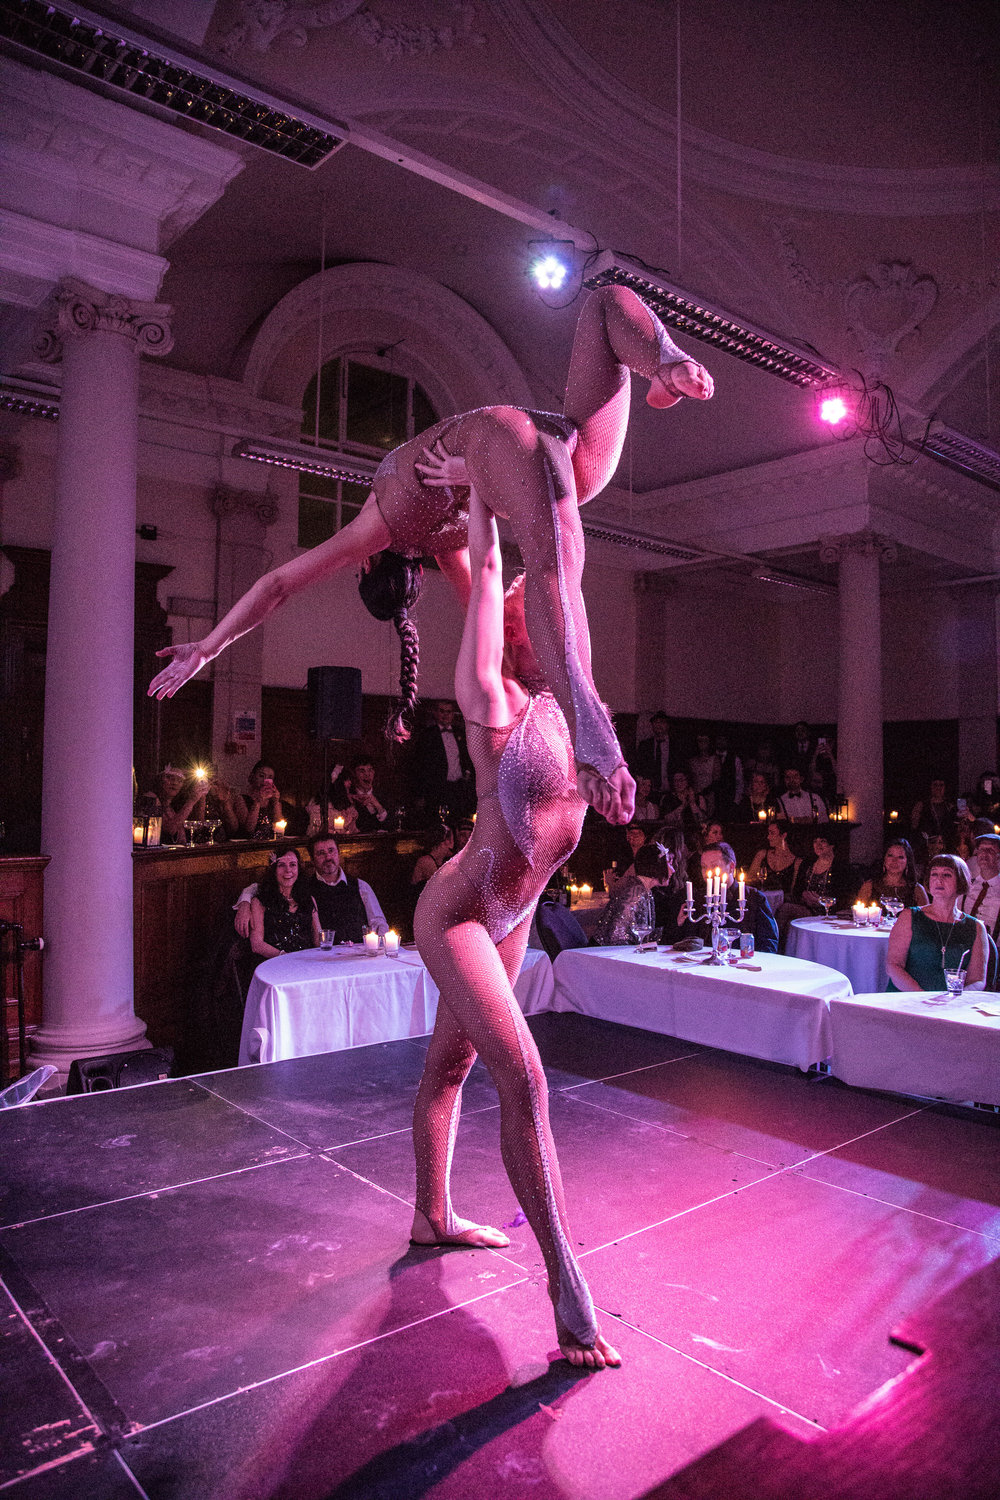 - Acrobats Deux Ailes in the Cabaret Lounge